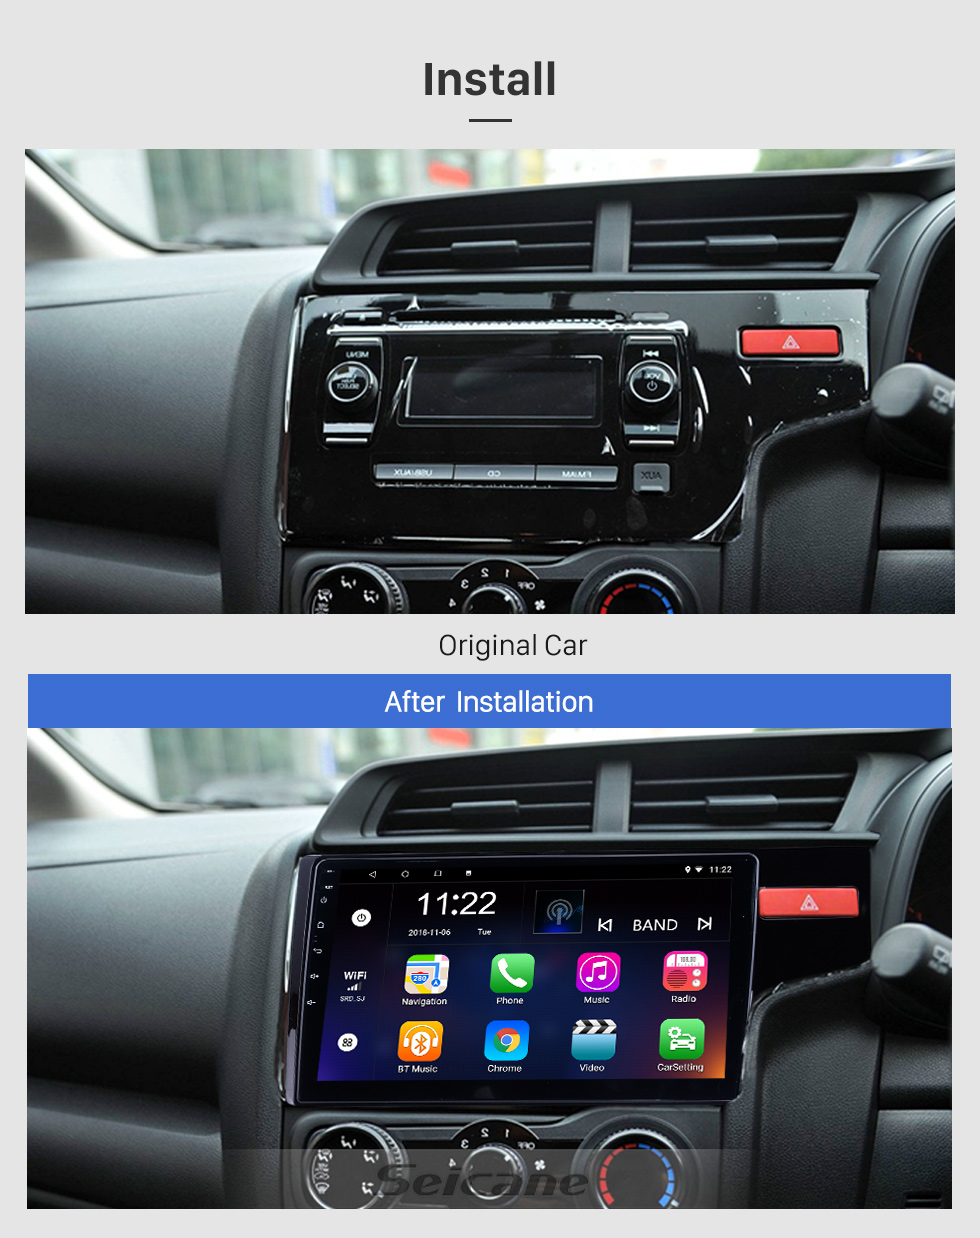 Seicane 10.1 Inch Android 8.1 1024*600 2014 2015 HONDA JAZZ/FIT (RHD) Radio Bluetooth Touch Screen GPS Navigation Car Stereo Mirror Link Steering Wheel Control 1080P DAB+